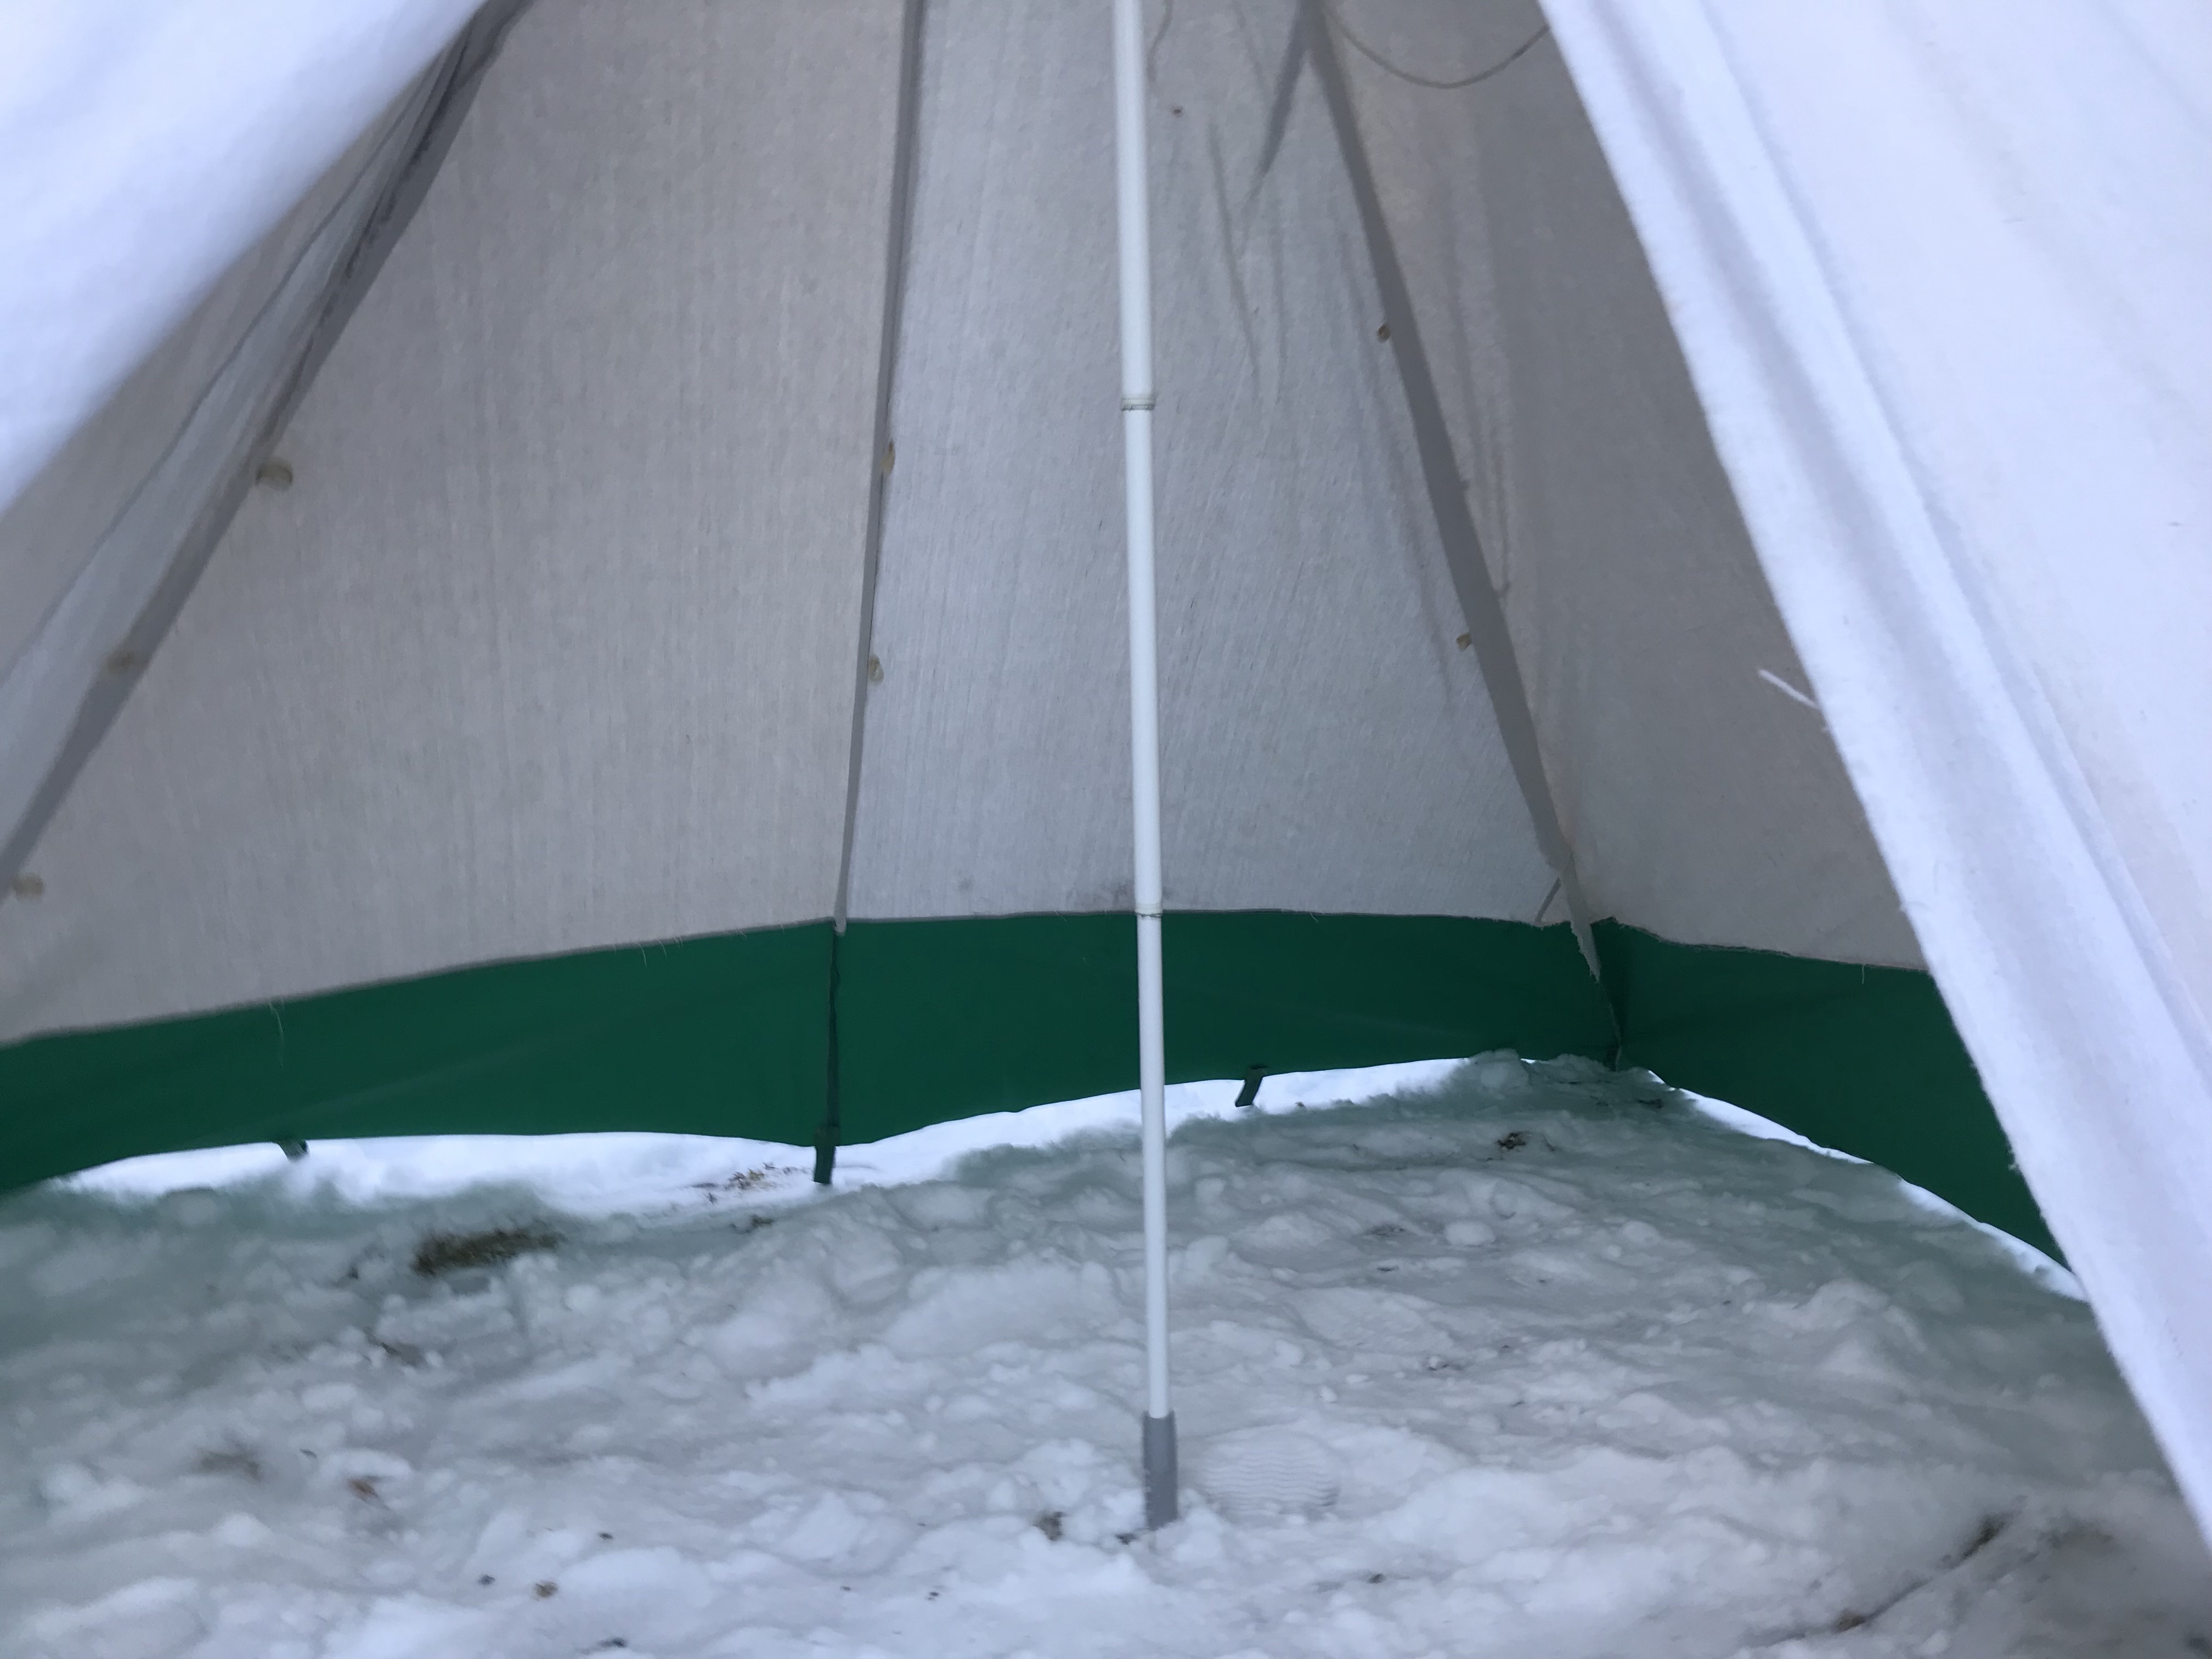 On my trip backcountry c&ing at Go Home Lake Sue went to exit the tent and when she pulled the zipper down the pole sunk and dropped the whole tent with ... & Hot Tent Renou0027s -Stabilization of the Painters Pole ...